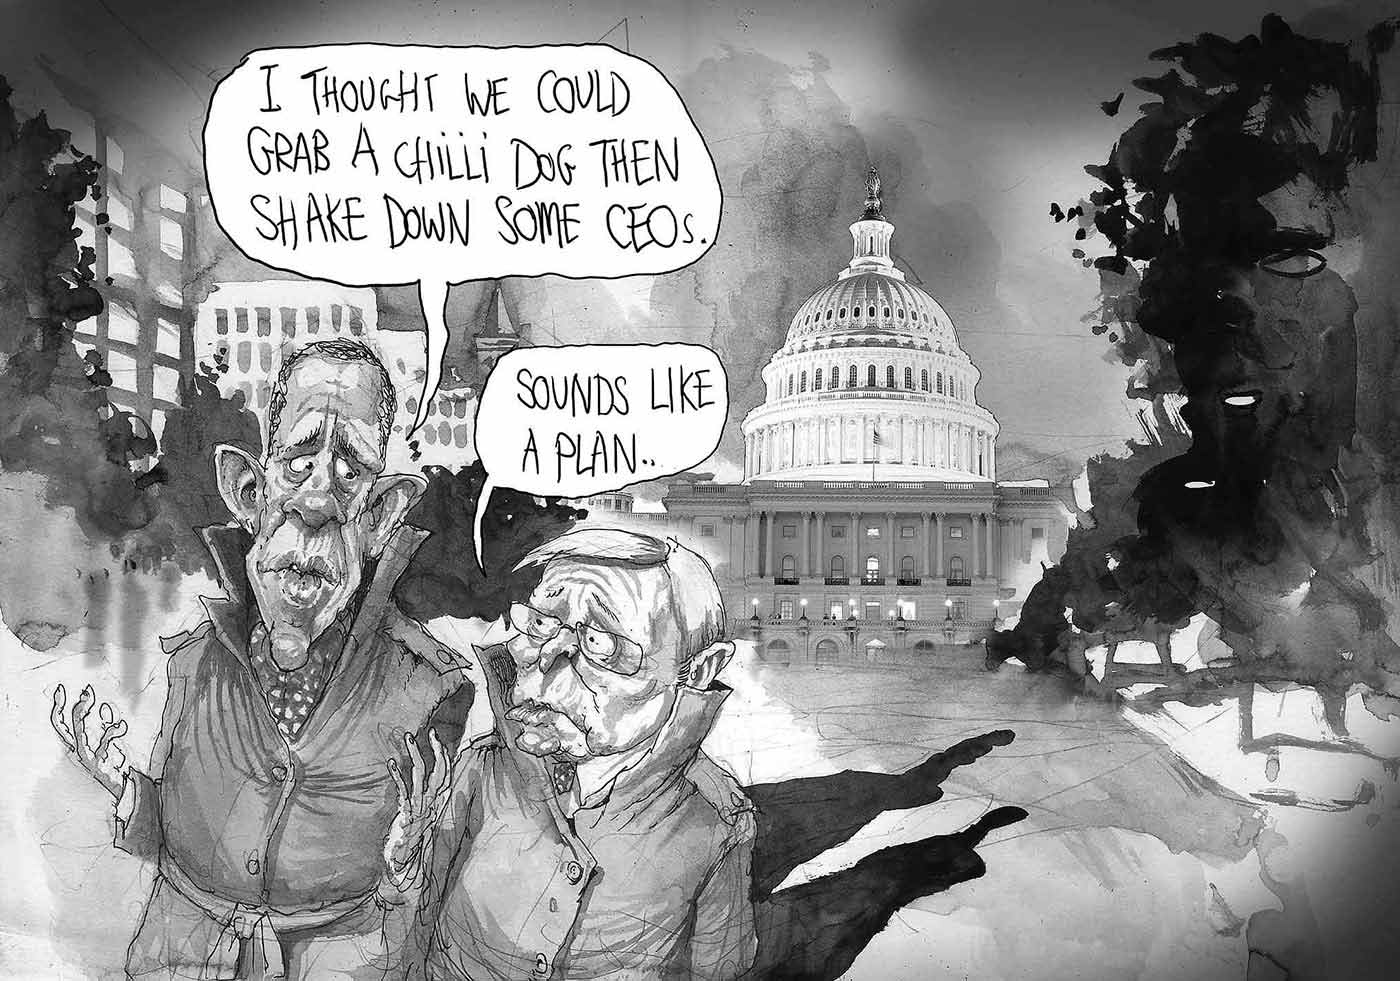 A black and white cartoon depicting Barak Obama and Kevin Rudd dressed in trenchcoats and walking away from the White House at night. President Obama says, 'I thought we could grab a chilli dog then shake down some CEOs'. Mr Rudd responds, 'Sounds like a plan'. - click to view larger image